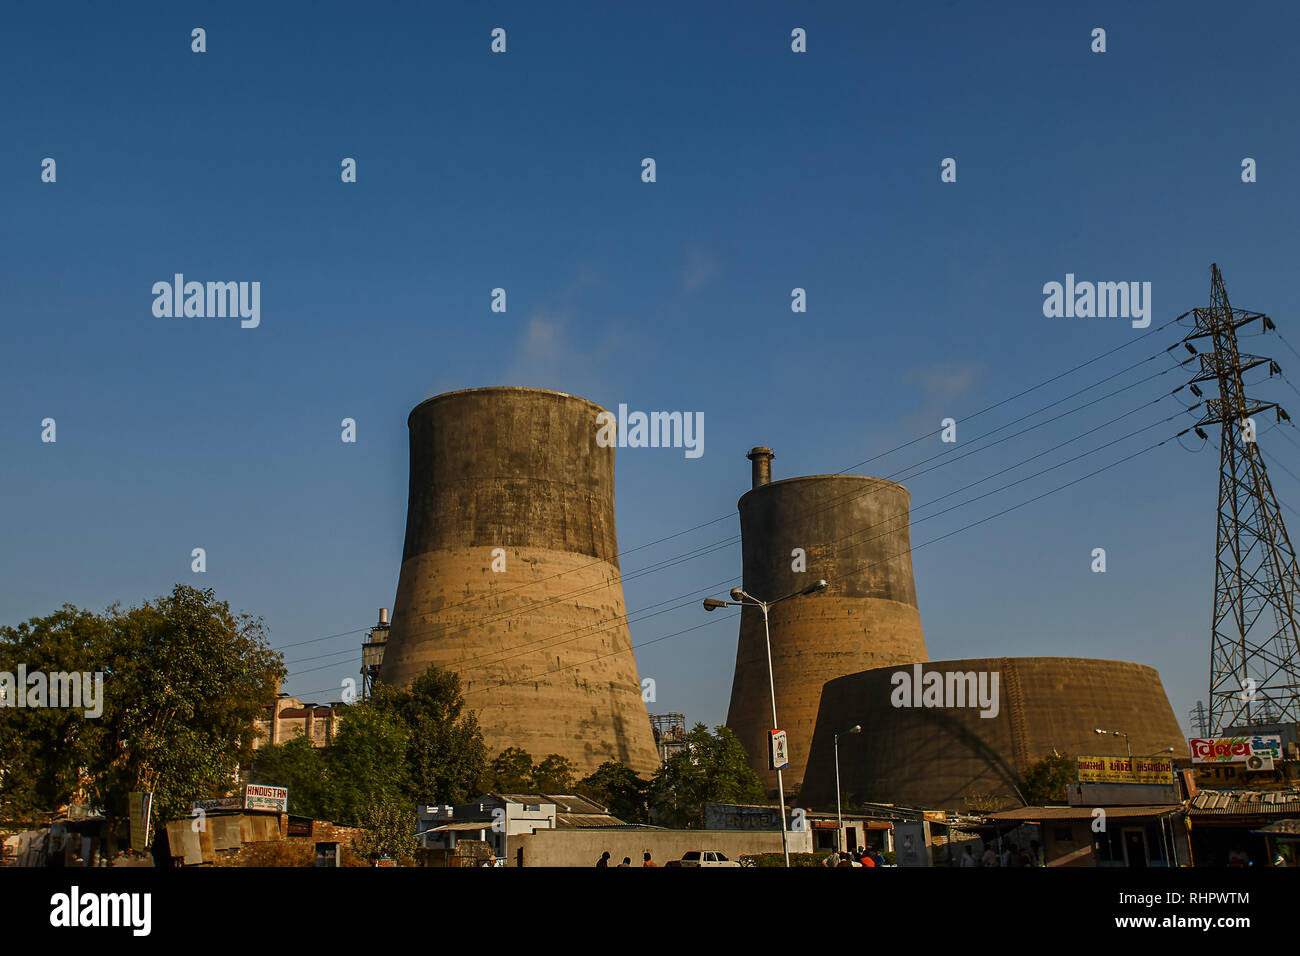 14 Dec 2007 Energy-cooling  thermal power Station  Ahmedabad  Gujarat  India - Stock Image